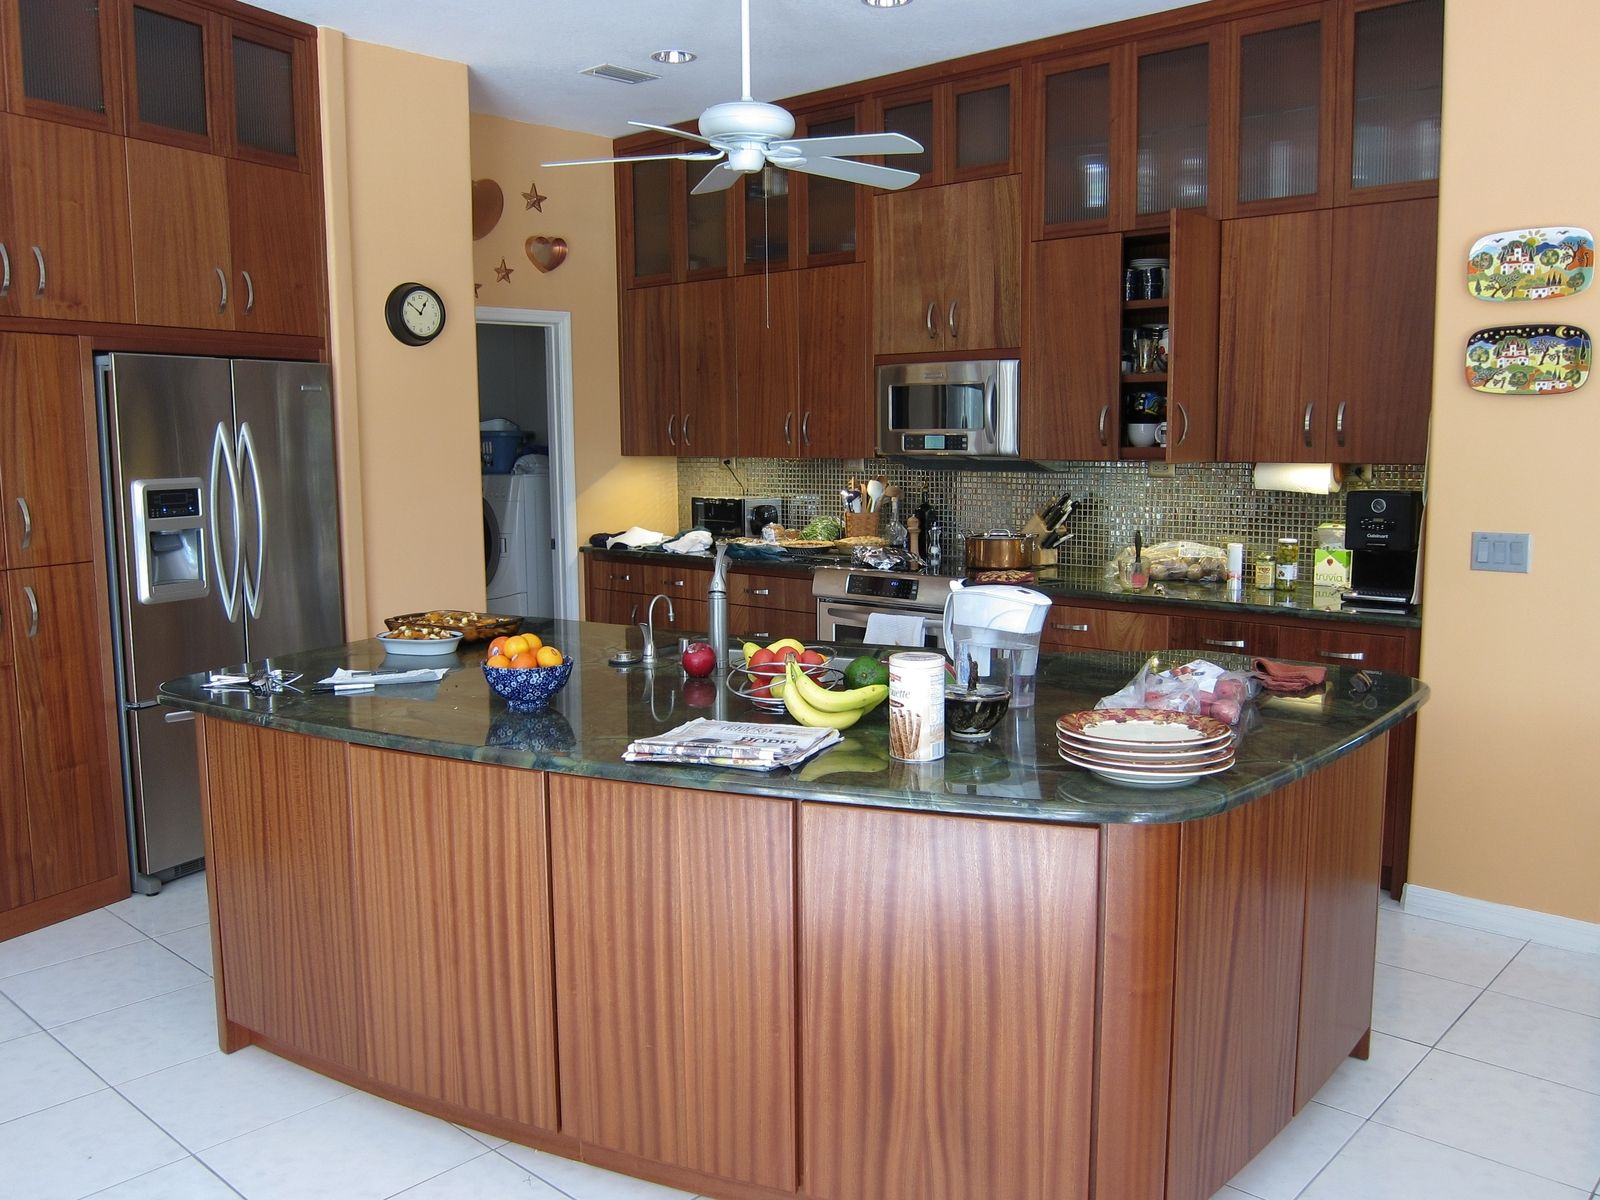 Custom sapele wood kitchen cabinets by natural designs inc for Custom built kitchen cabinets